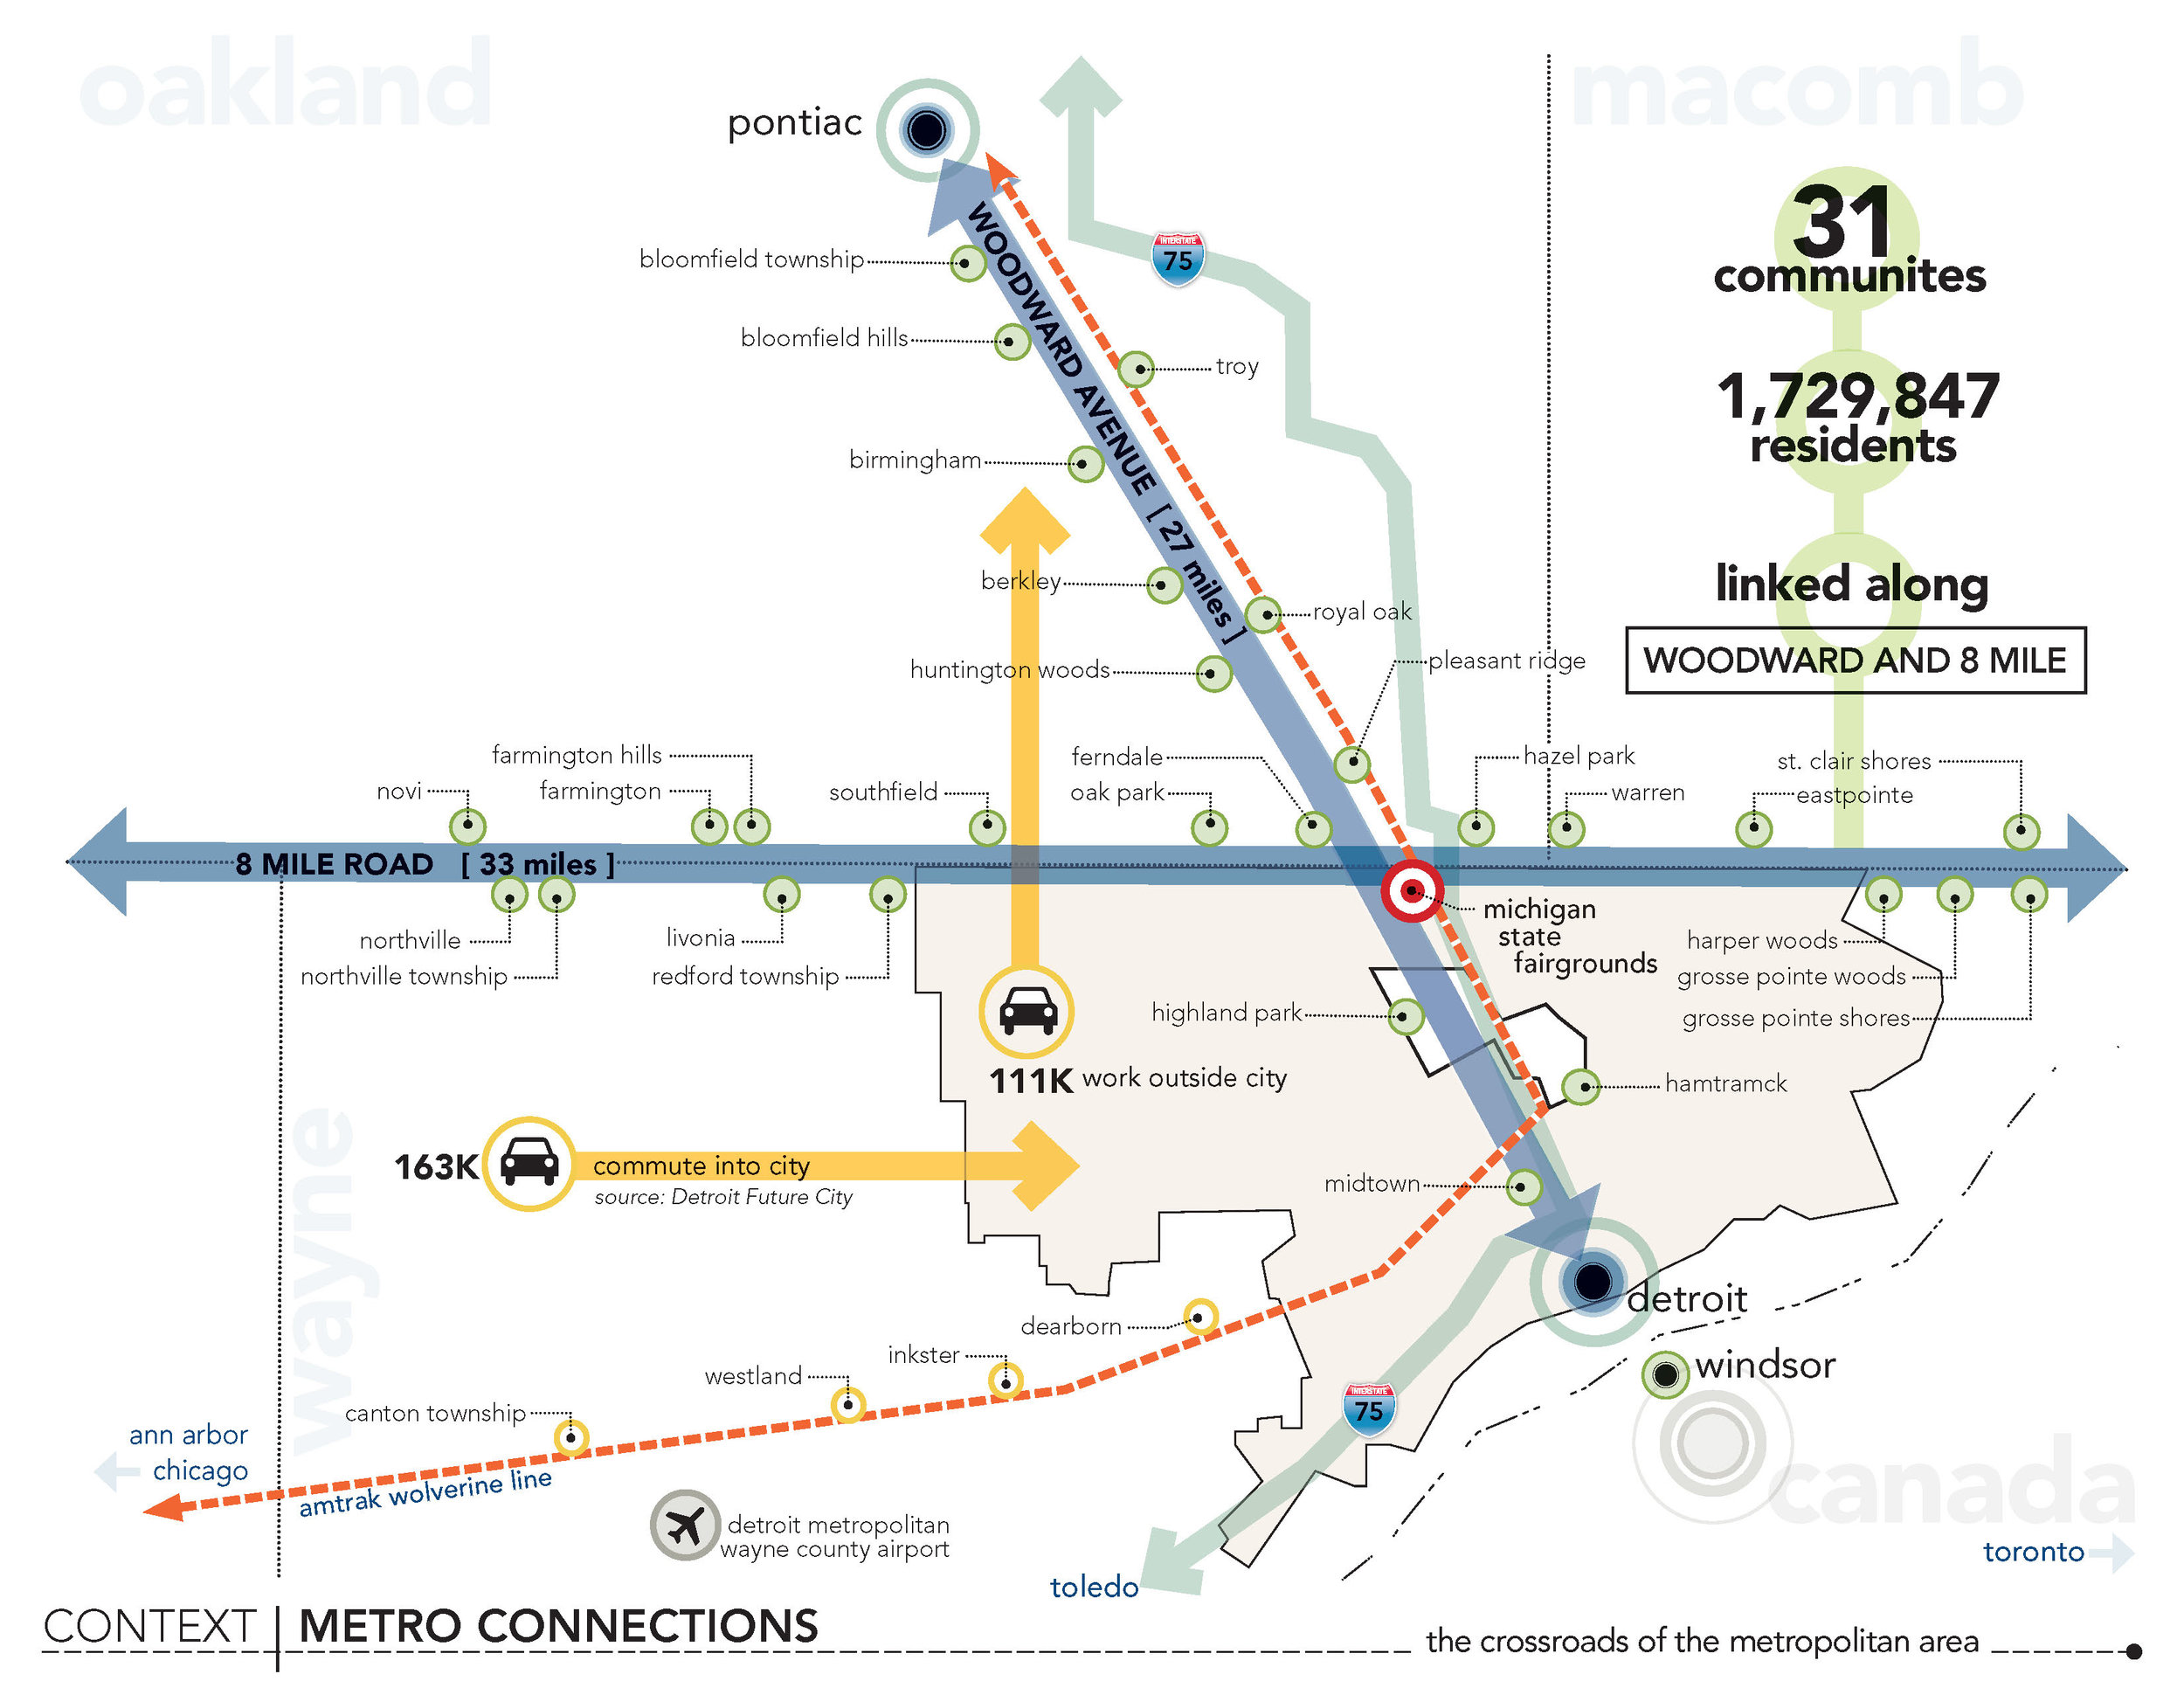 Metro Connections: the crossroads of the metropolitan area